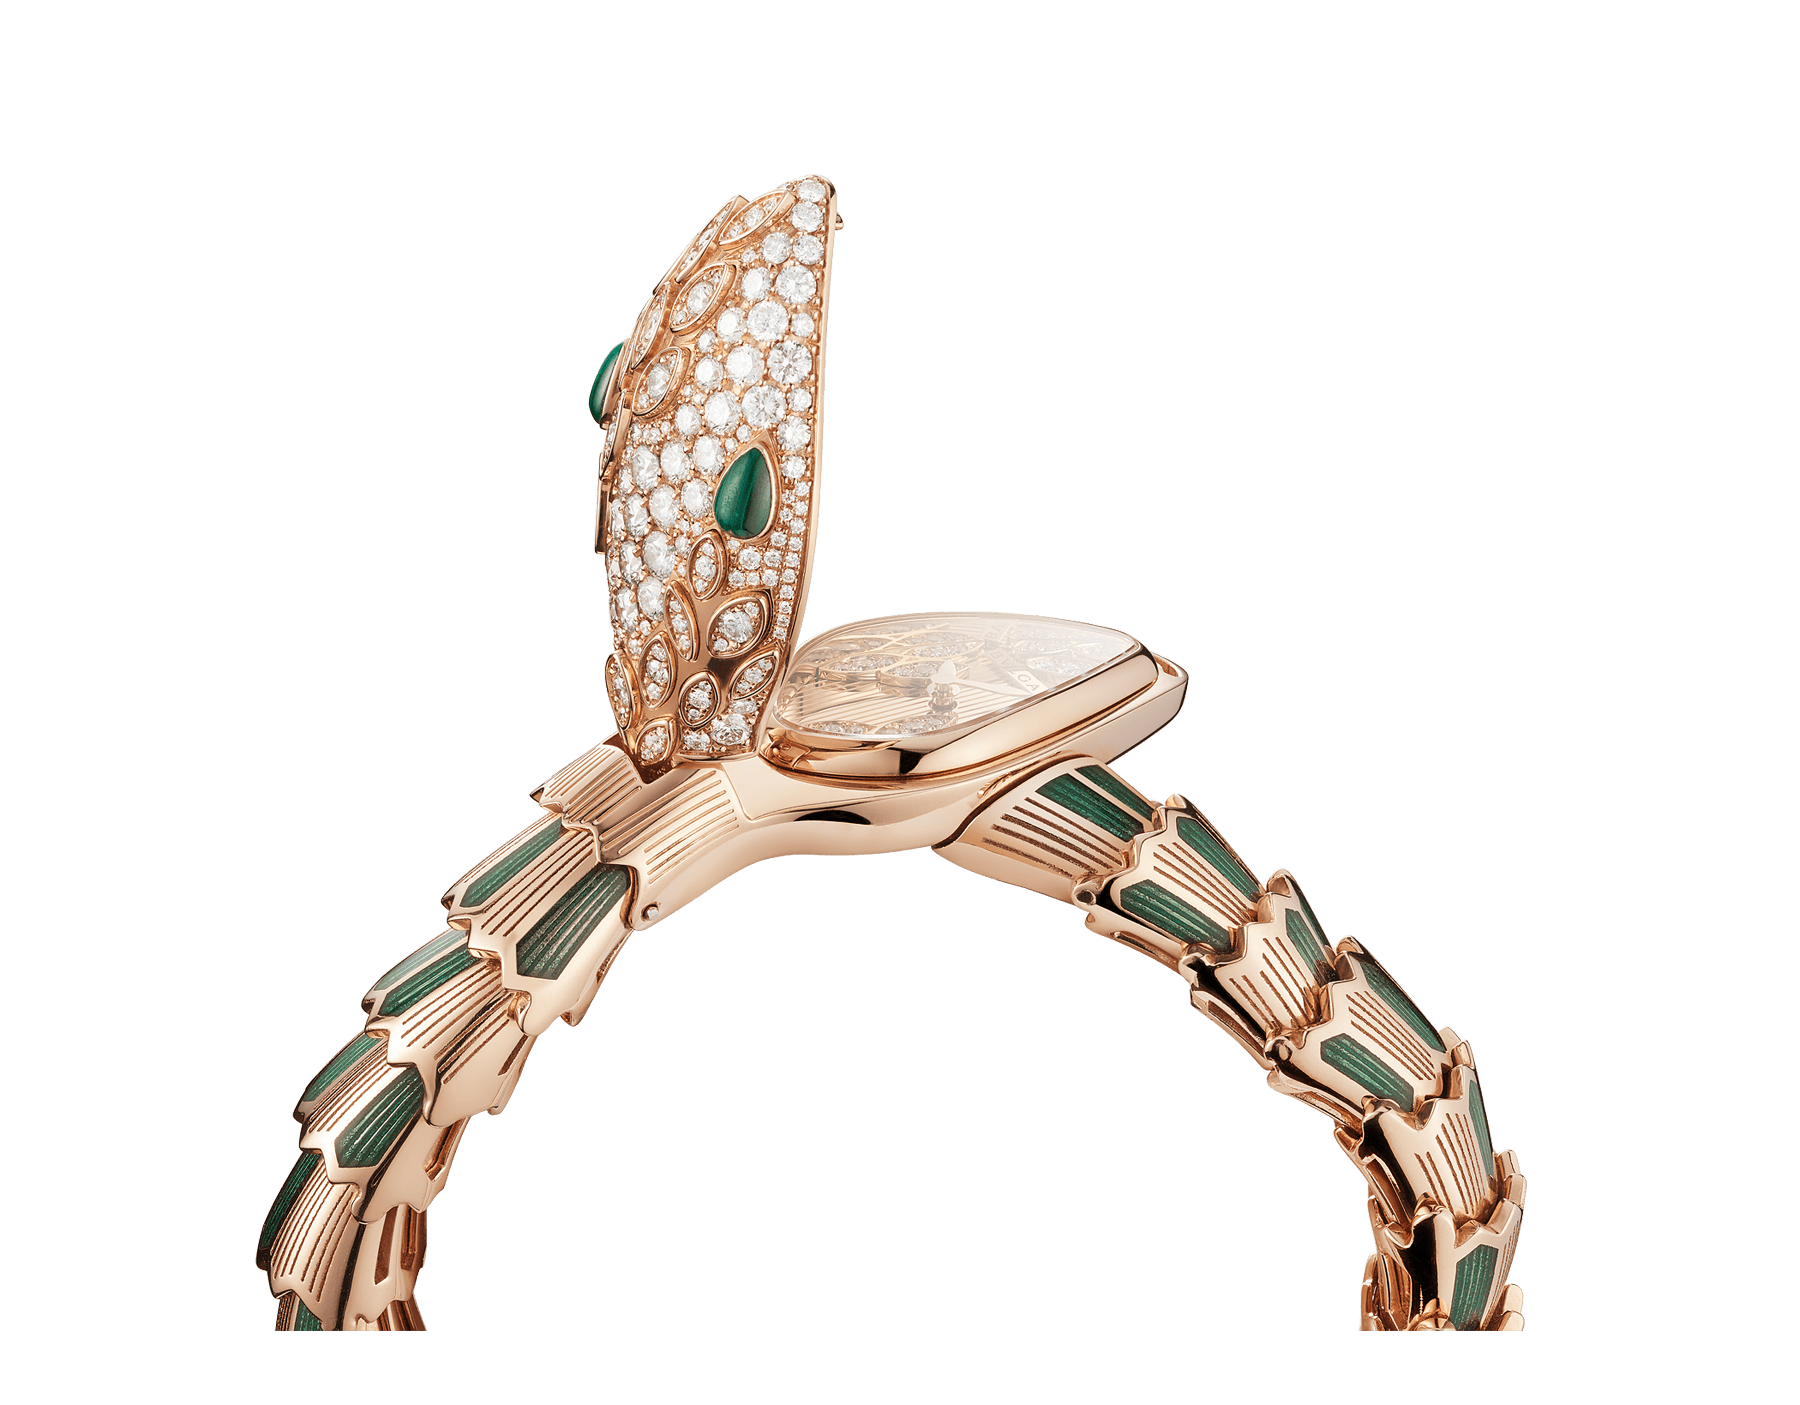 Serpenti Secret Watch with 18 kt rose gold head set with brilliant cut diamonds and malachite eyes, 18 kt rose gold case, 18 kt rose gold dial and single spiral bracelet, both set with brilliant cut diamonds, malachites and green enamel. 102240 image 3